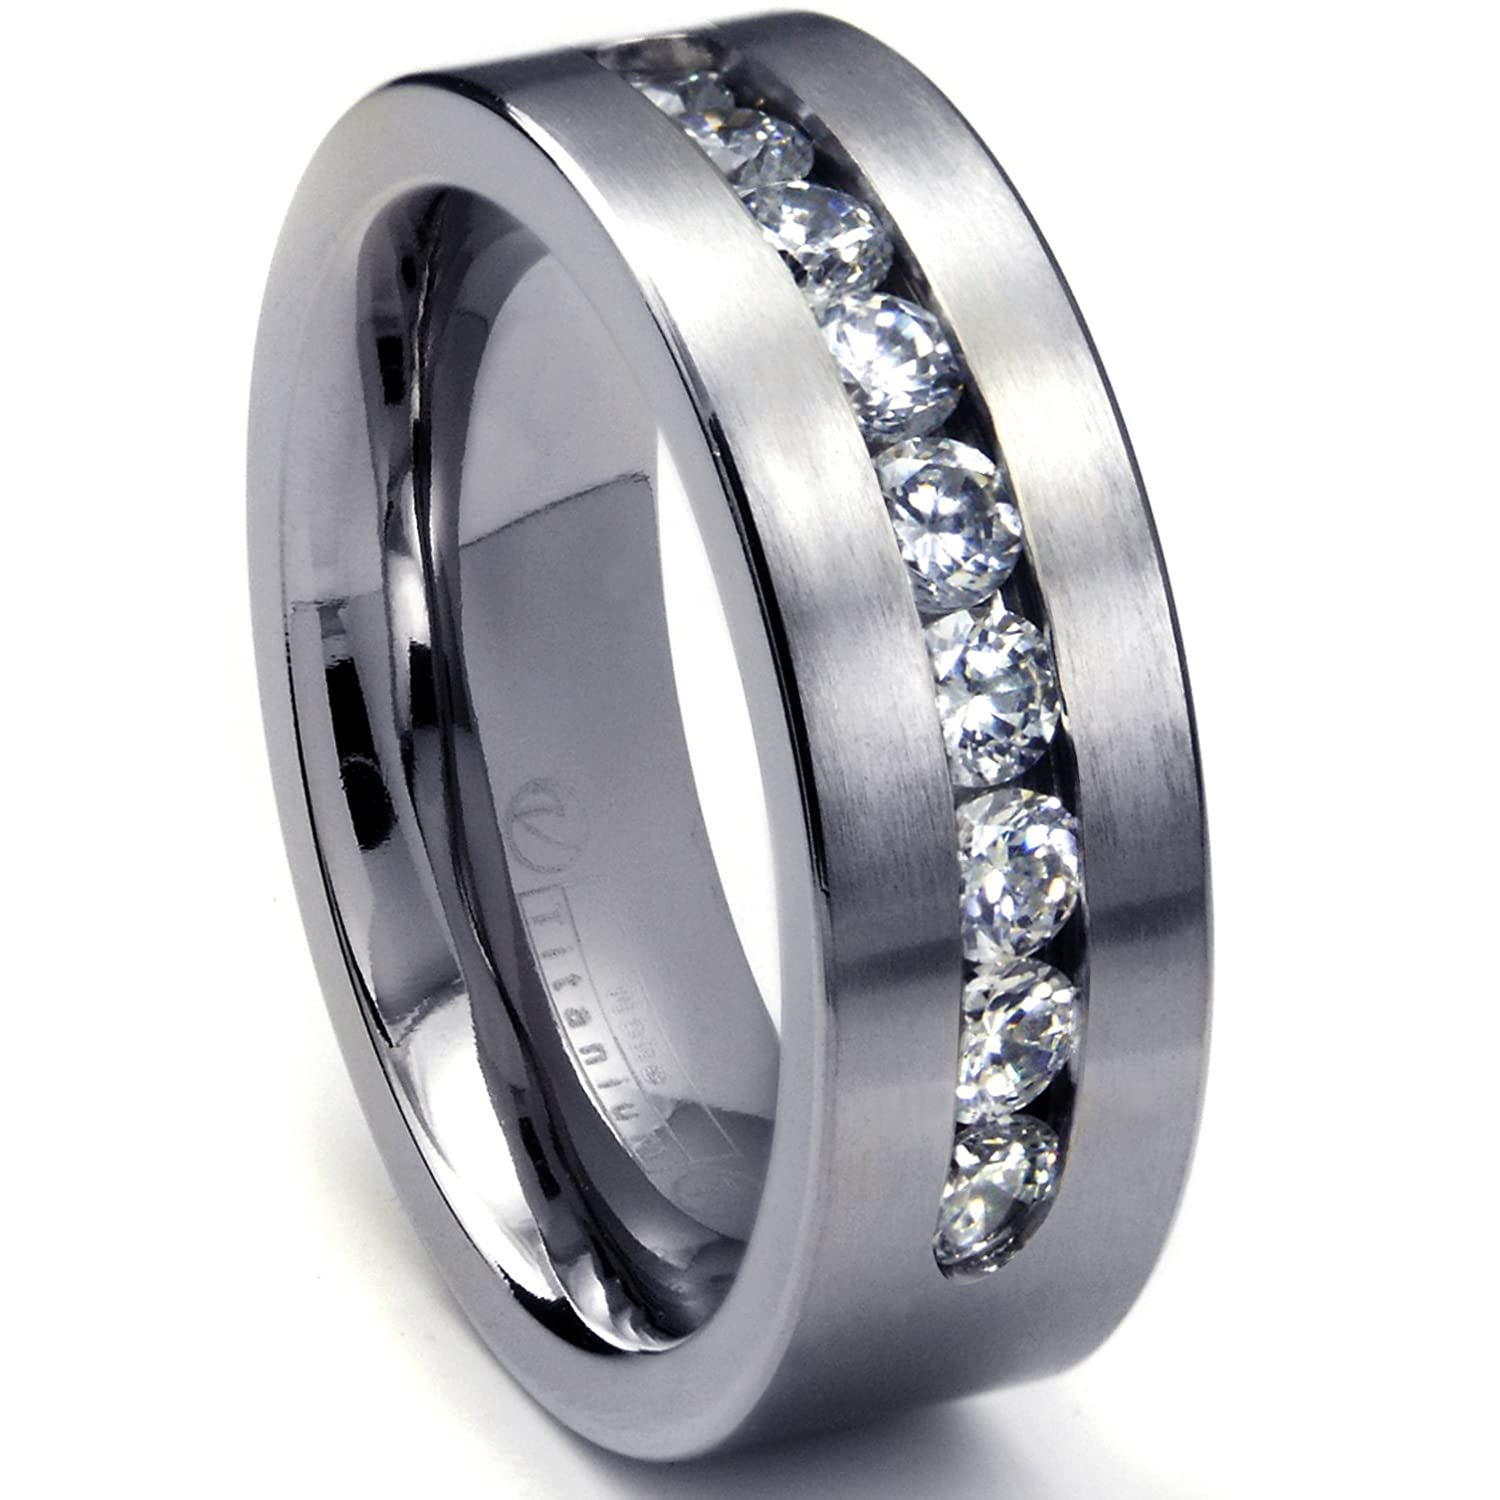 Amazon 8 MM Men s Titanium ring wedding band with 9 large